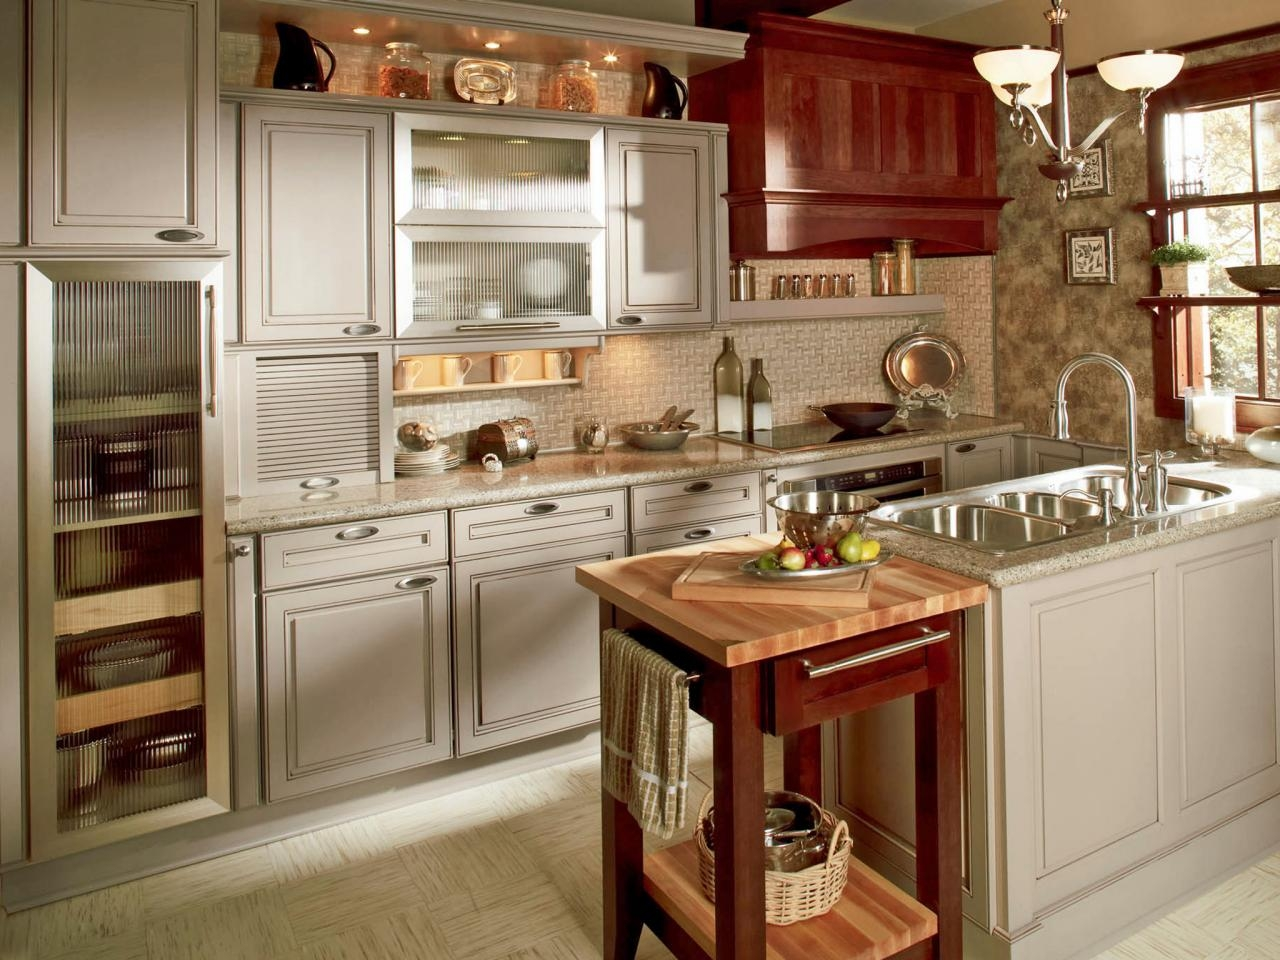 Kitchen Cabinets Images 2015